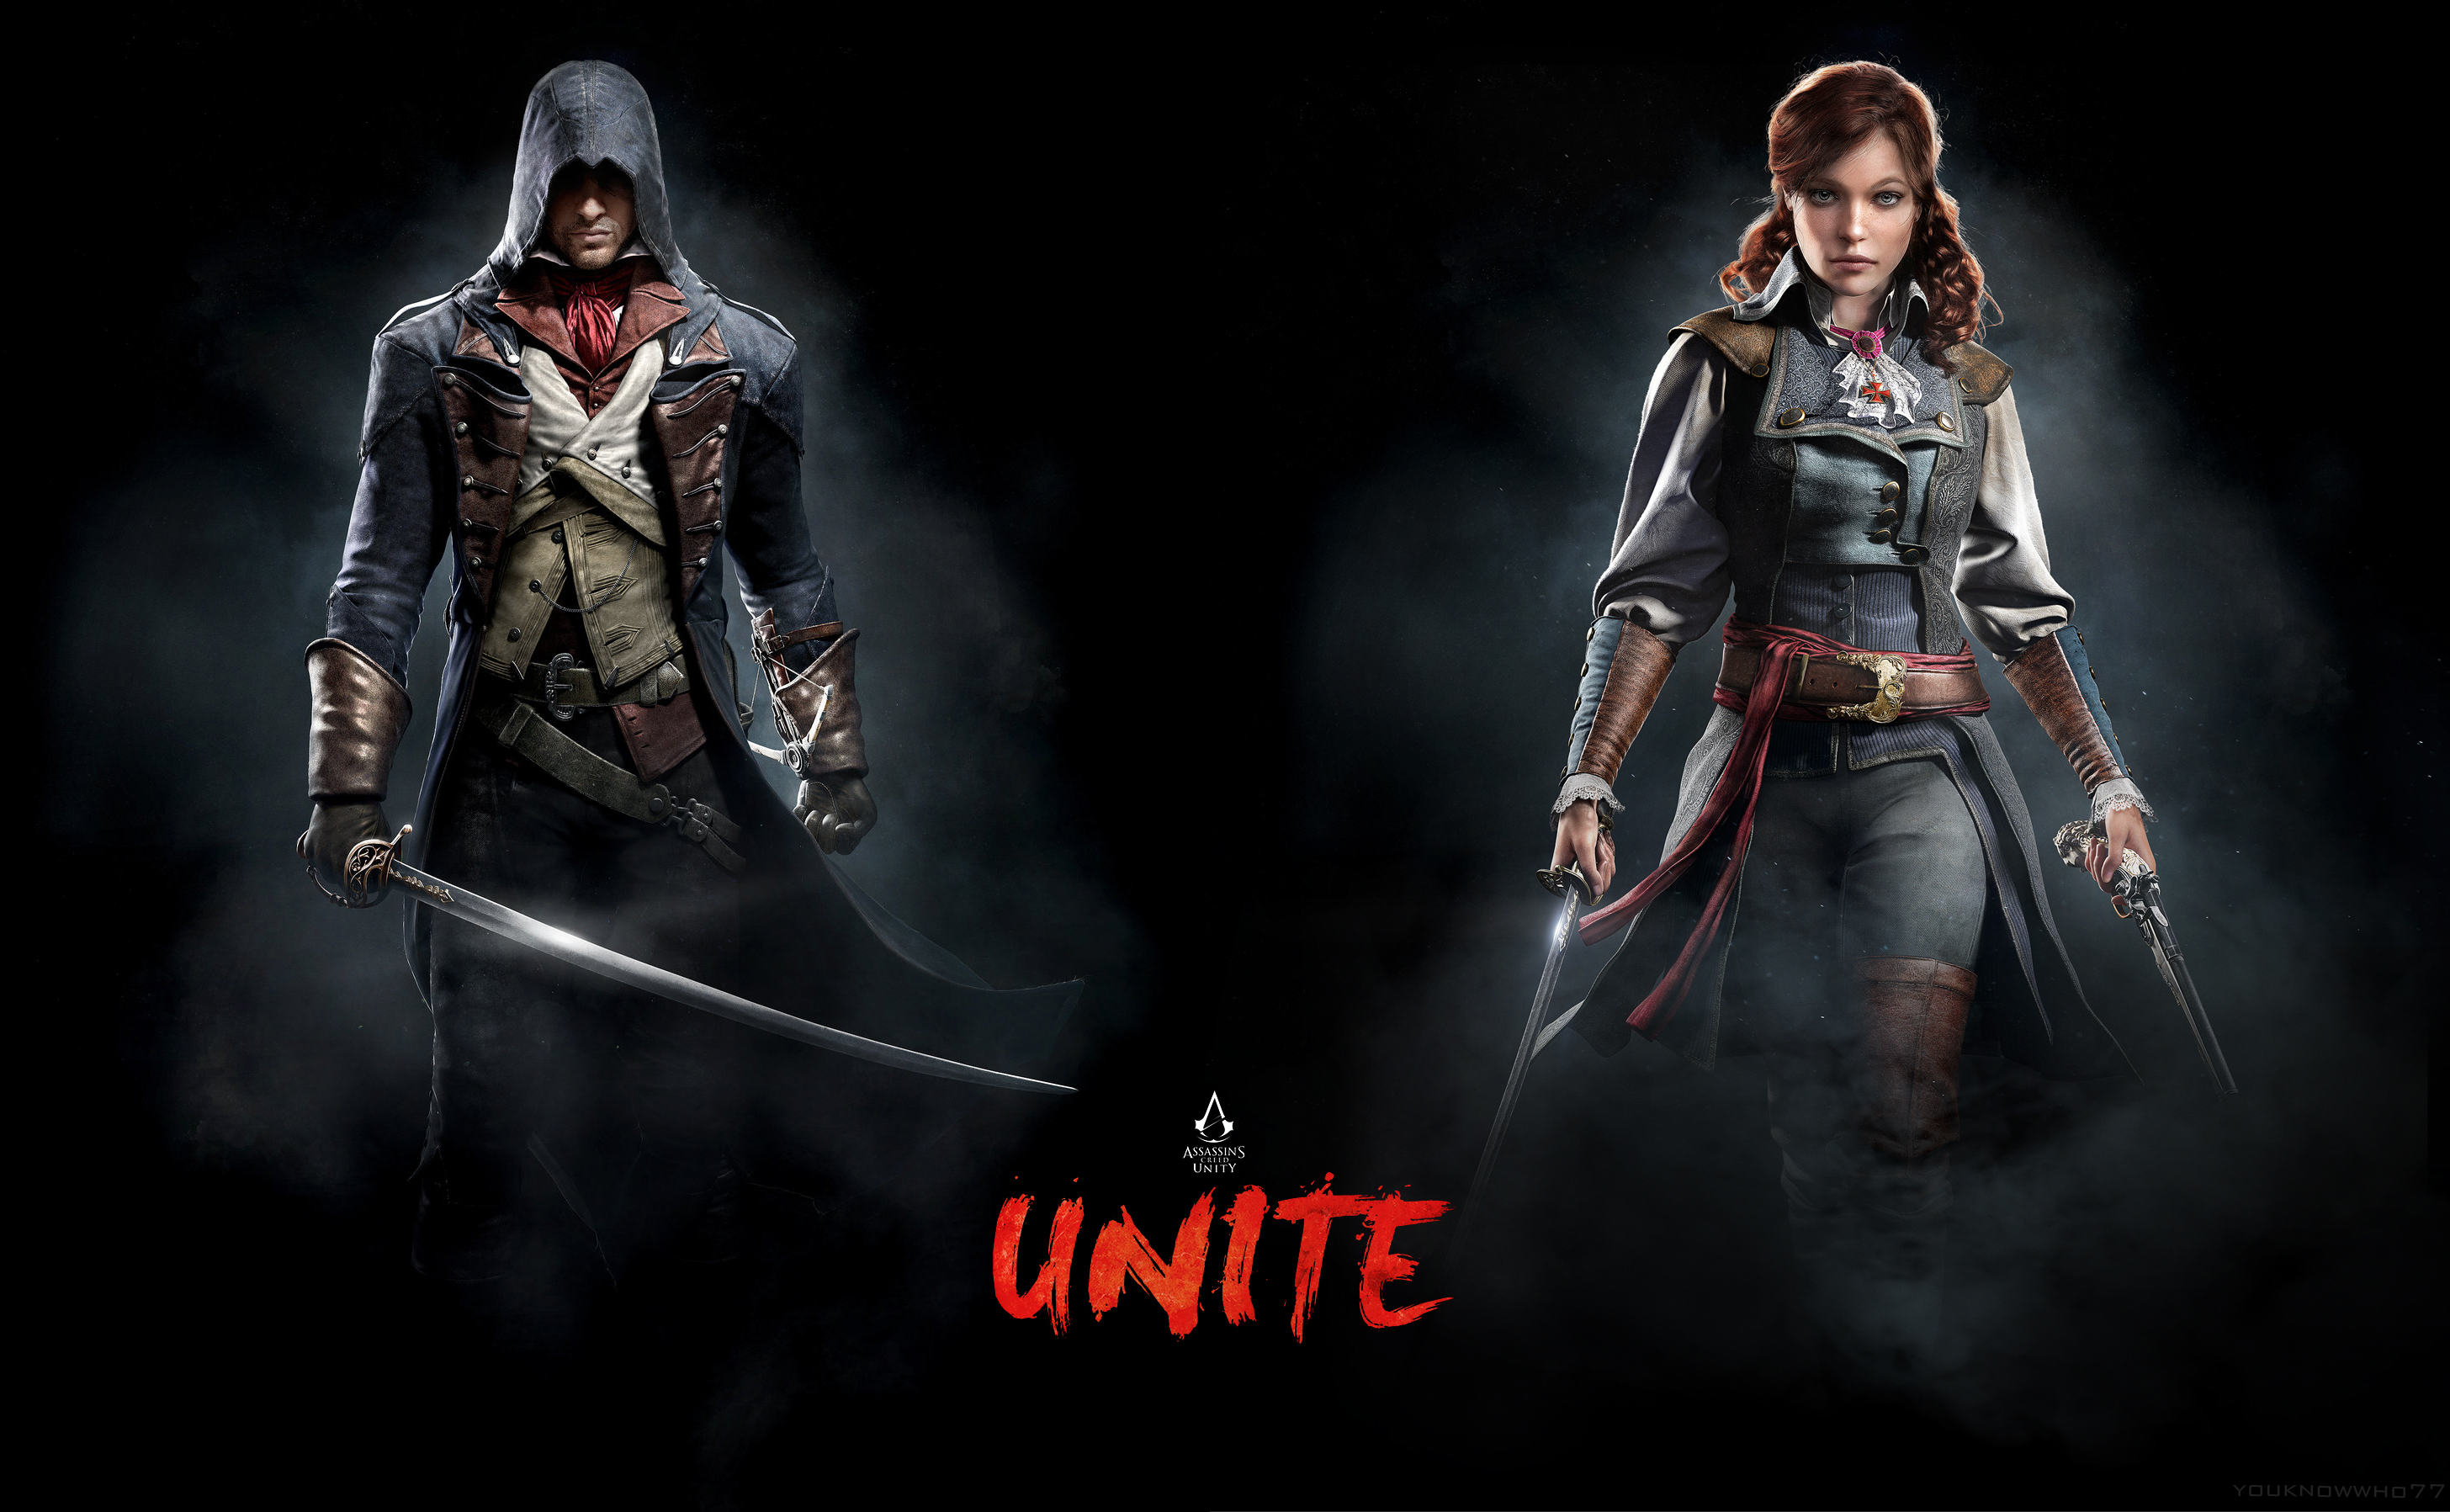 Ac Unity Arno And Elise Unite Wallpaper By Youknowwho77 On